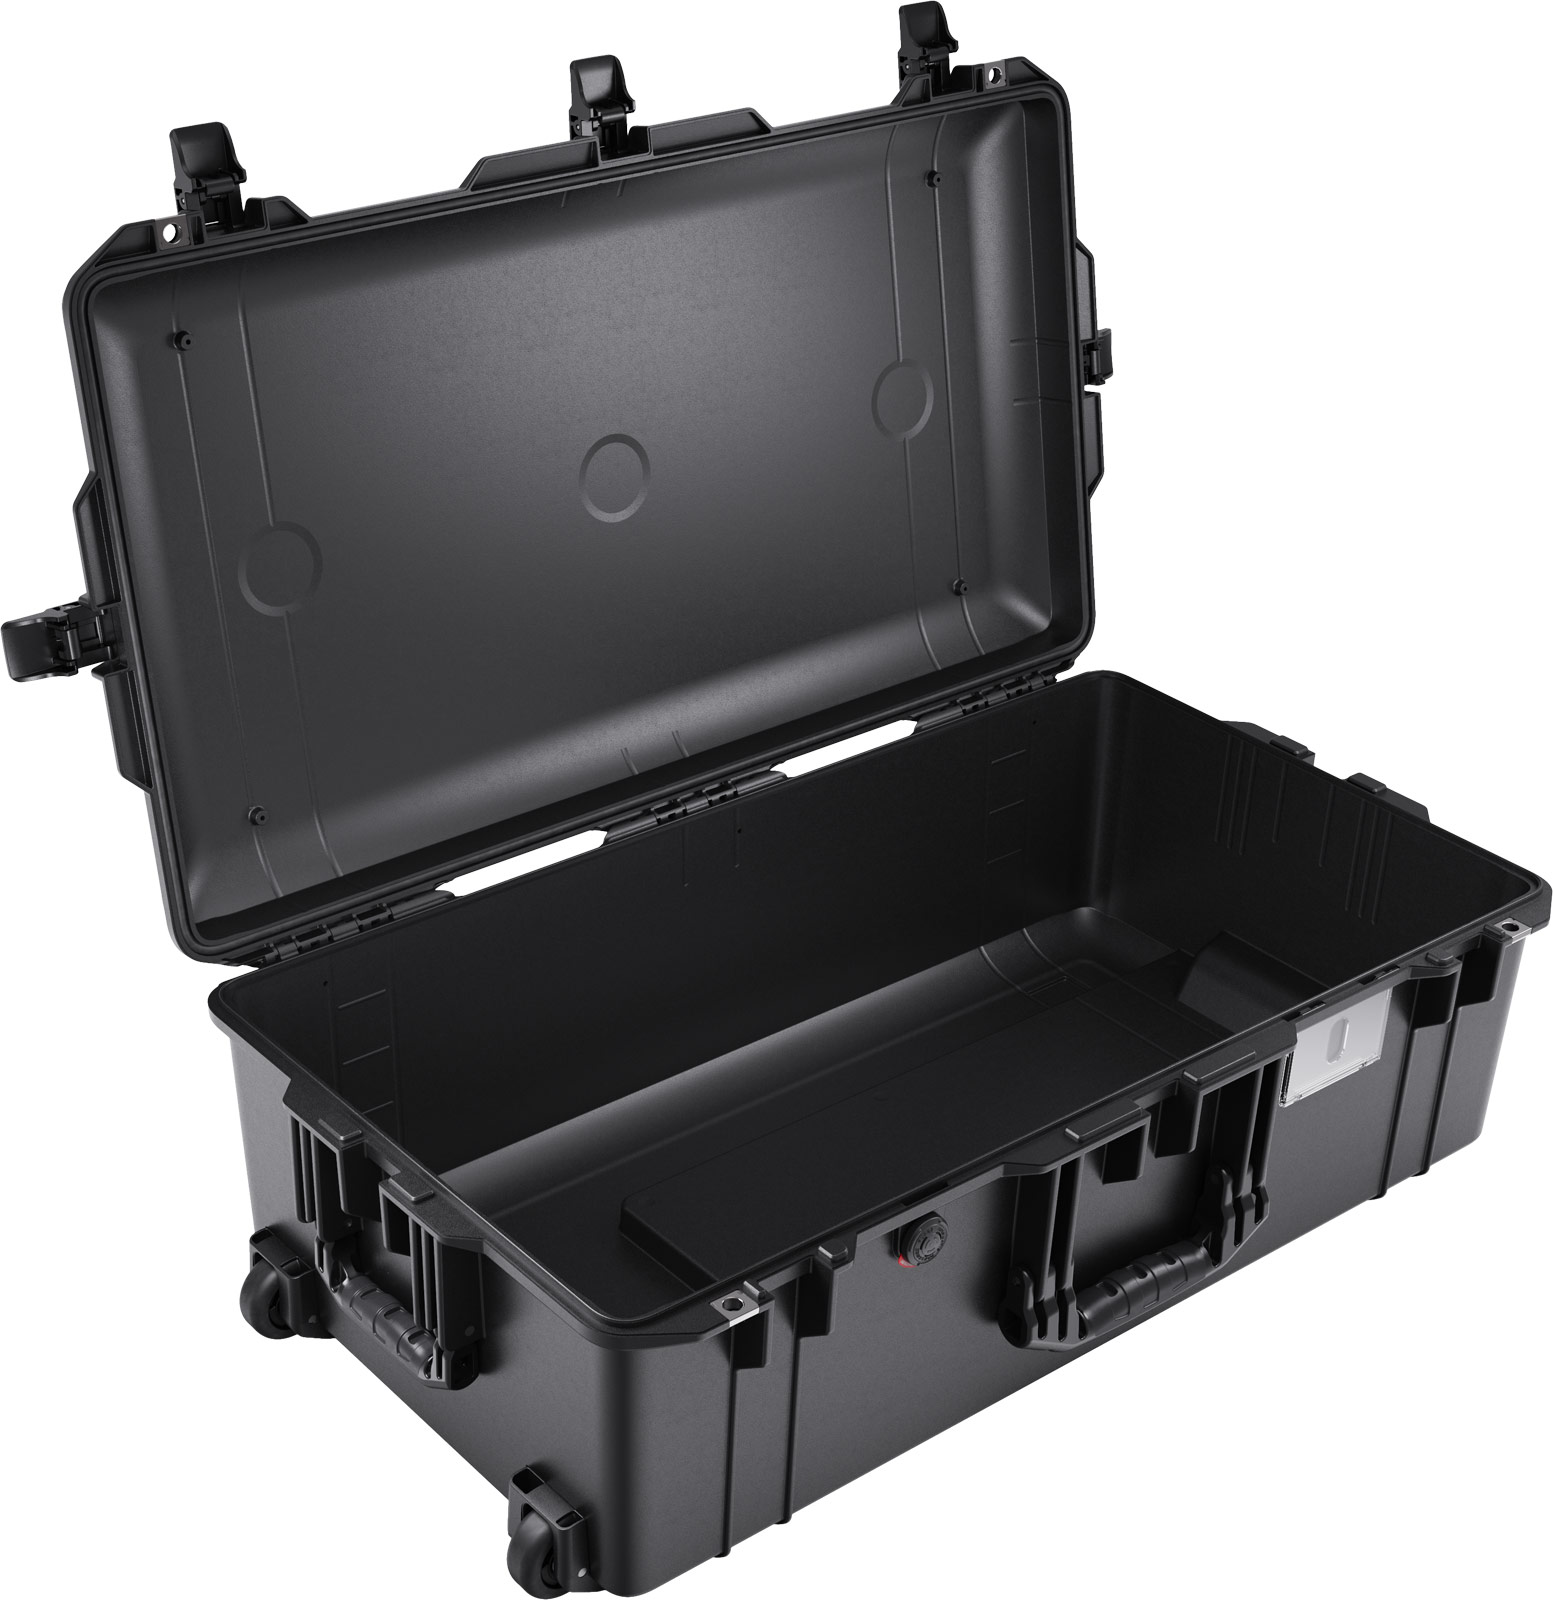 buy pelican air 1615 shop rolling luggage case